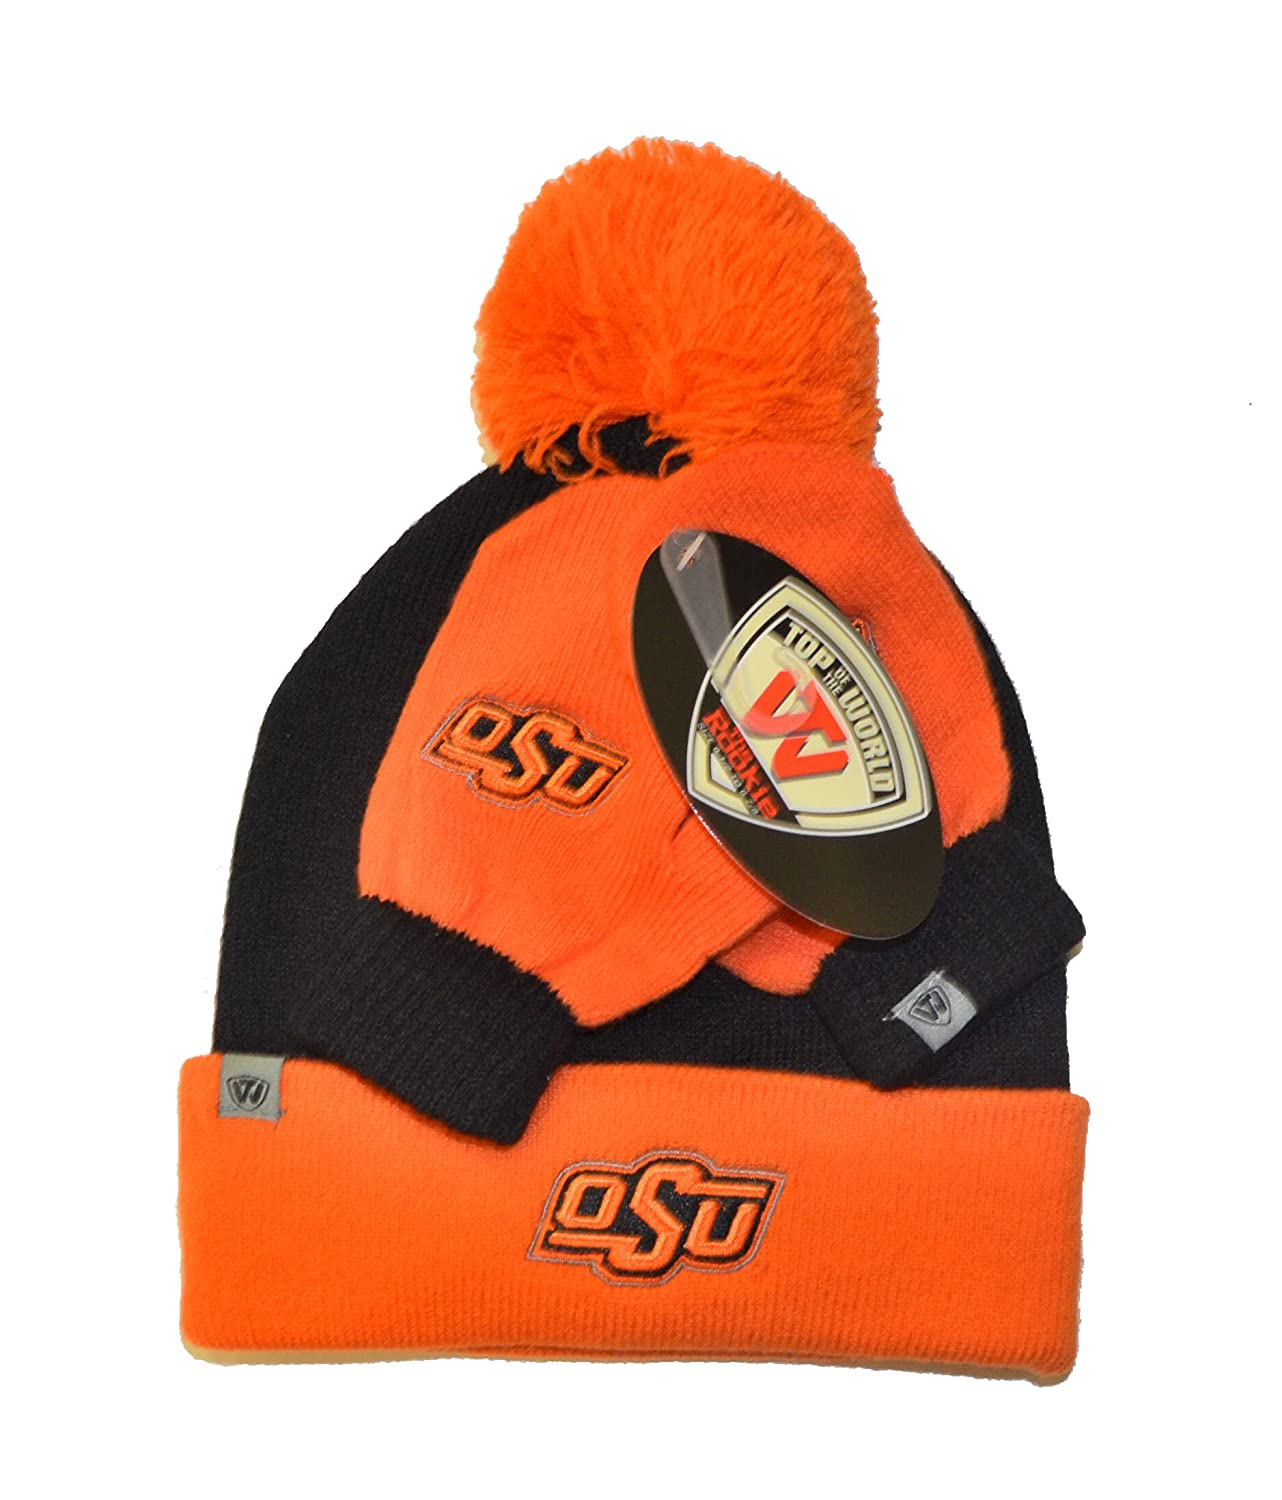 Top of World Lil Dew Toddler Beanie Hat and Mitten Combo NCAA Infant Cuffed Winter Gift Set Cap//Gloves